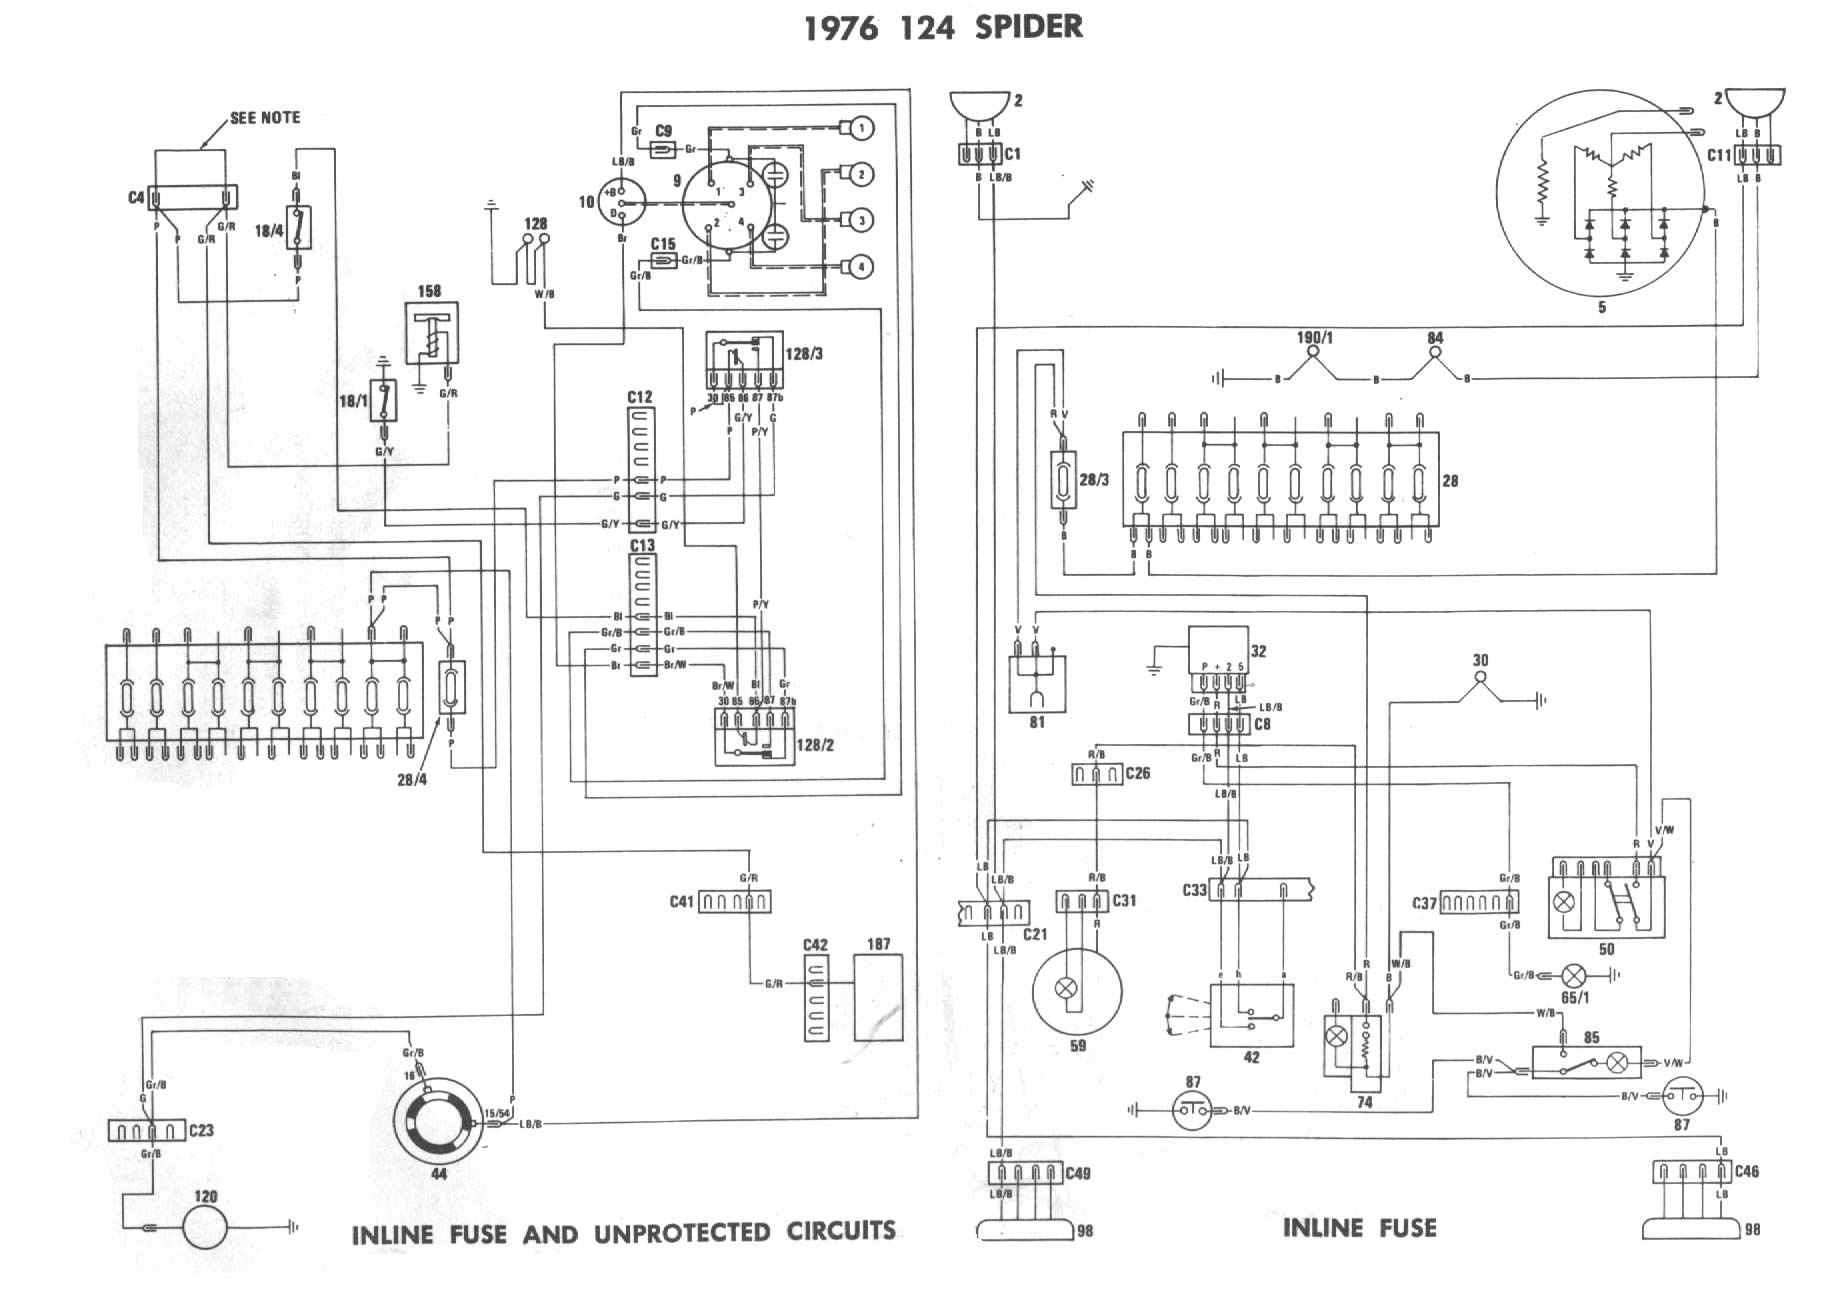 1976 fiat spider wiring diagram